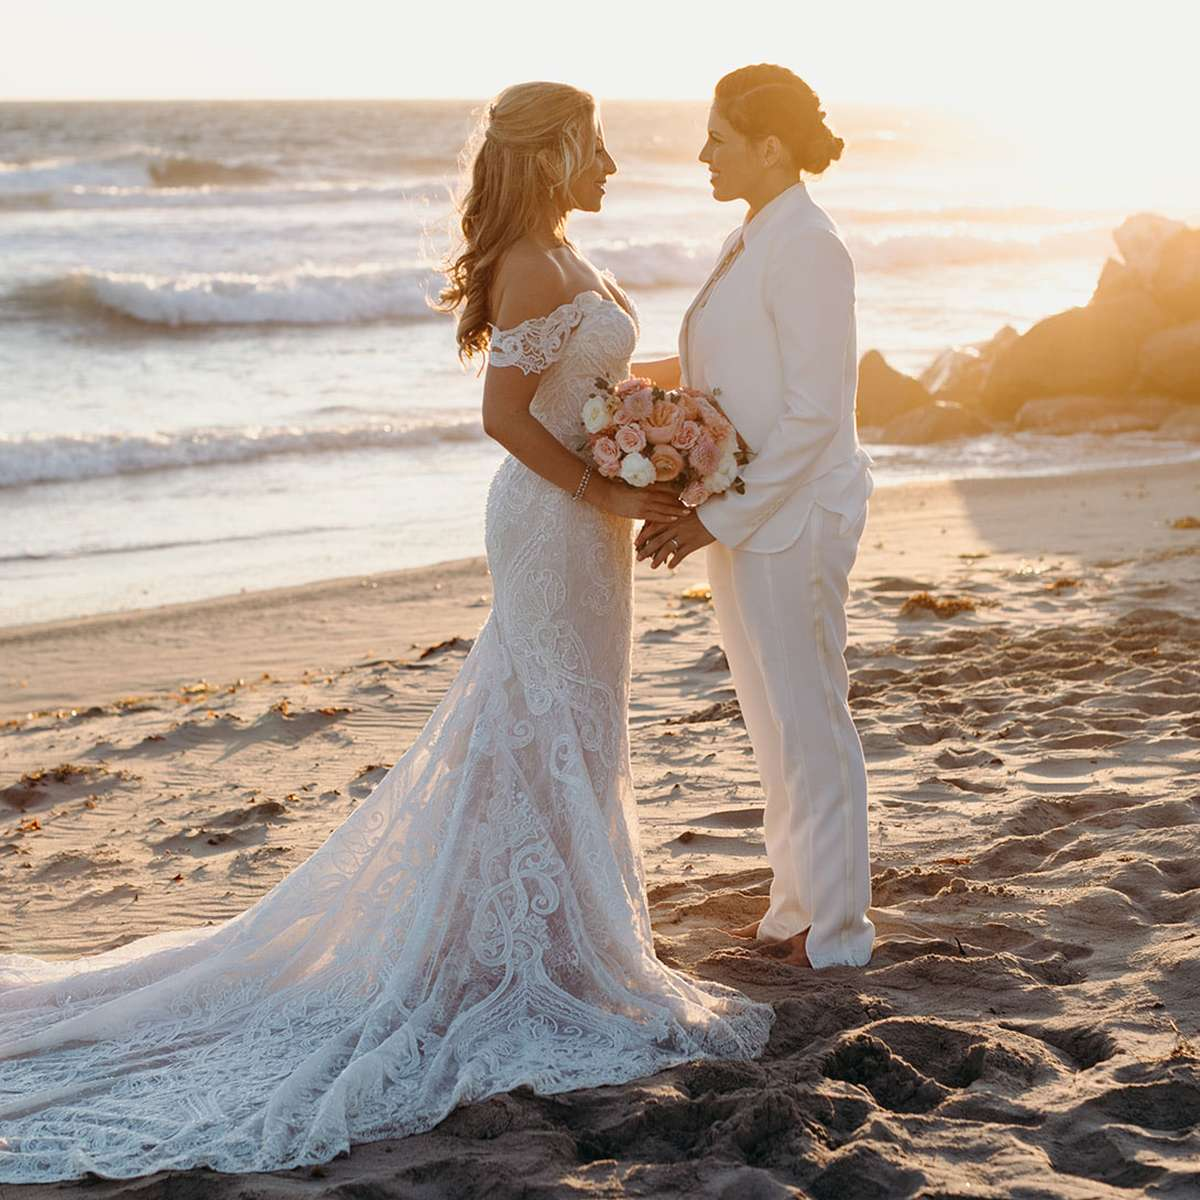 beach wedding sunset picture with two brides in Malibu